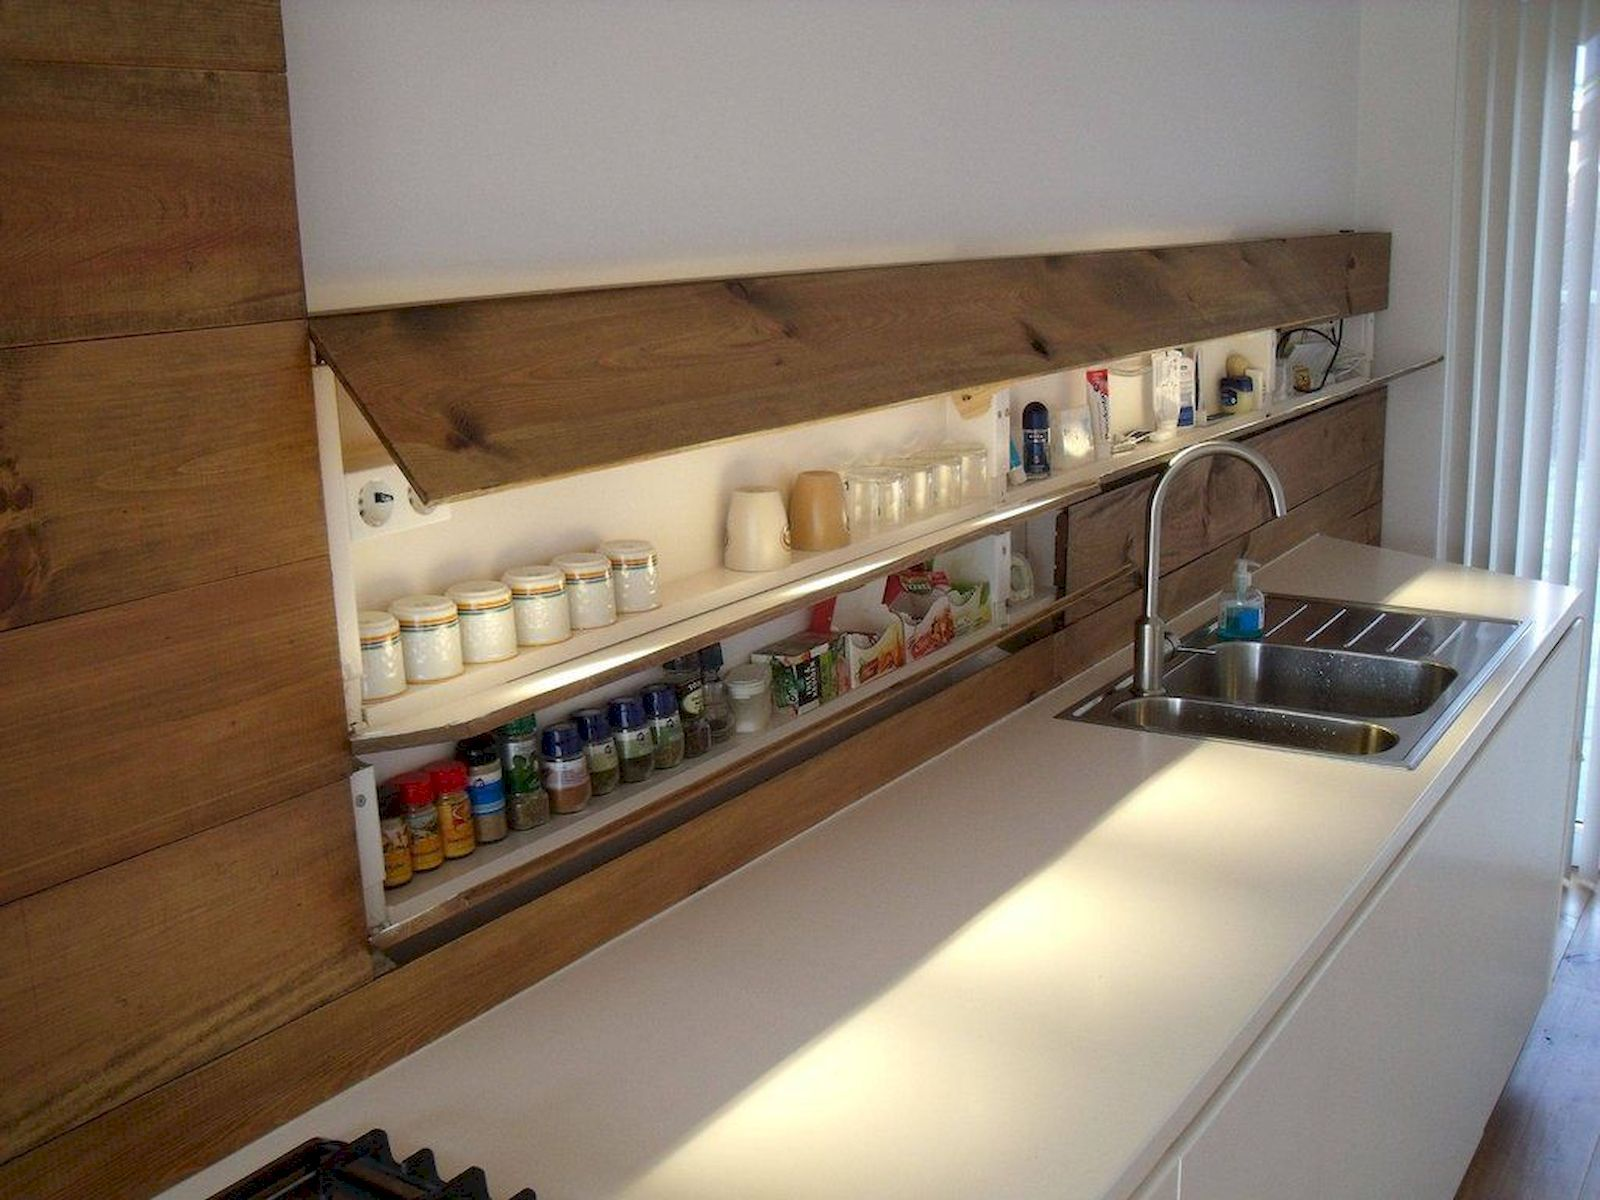 Nice Awesome Storage Ideas For A Kitchen Organization And Optimizationhttps Hajarfresh C Space Saving Kitchen Small Kitchen Storage Kitchen Storage Solutions